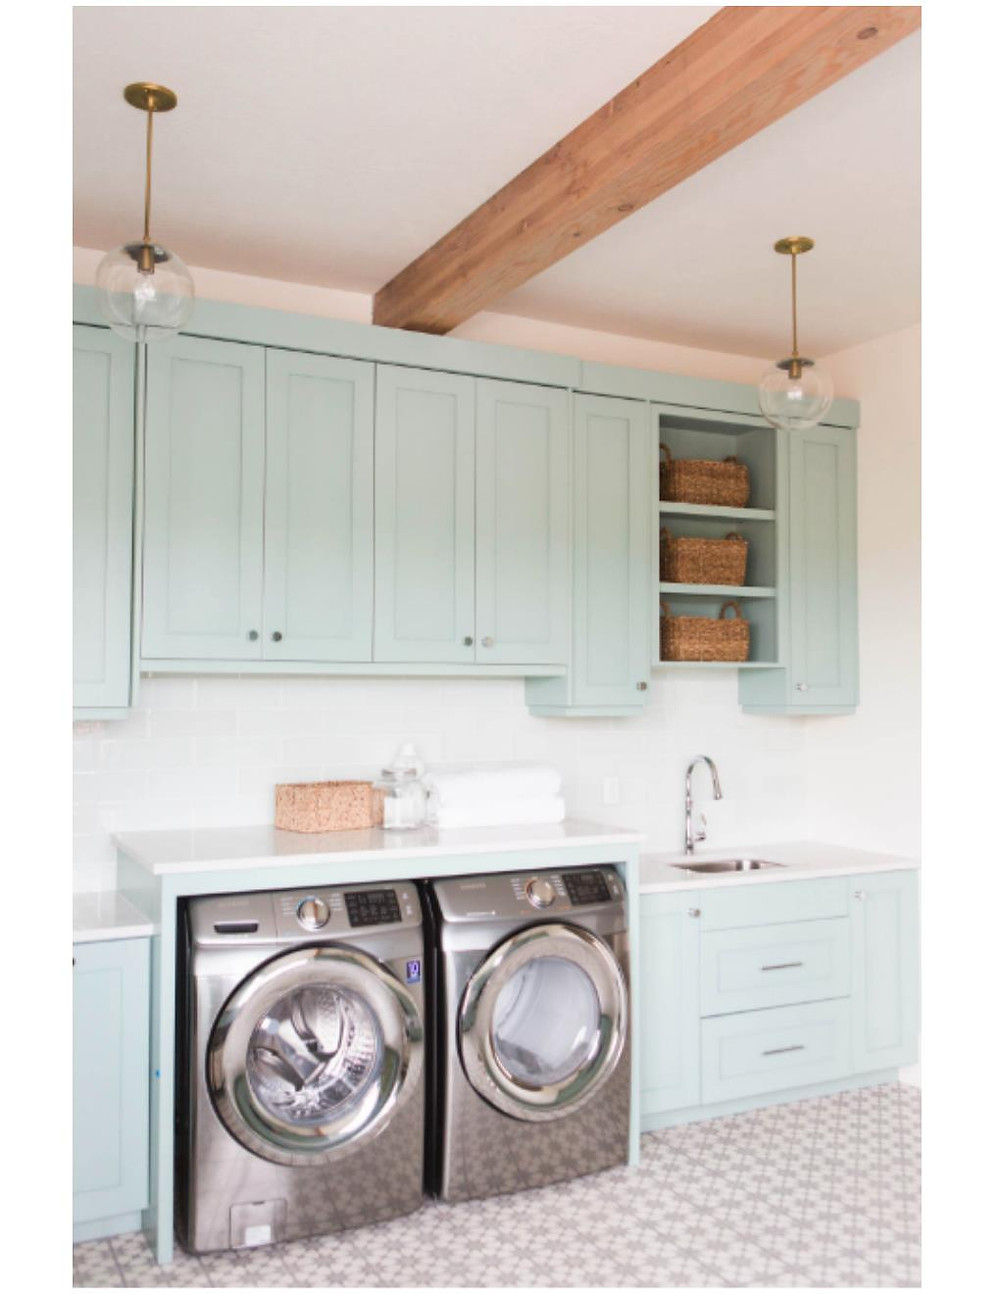 teal laundry room with counter above washer and dryer